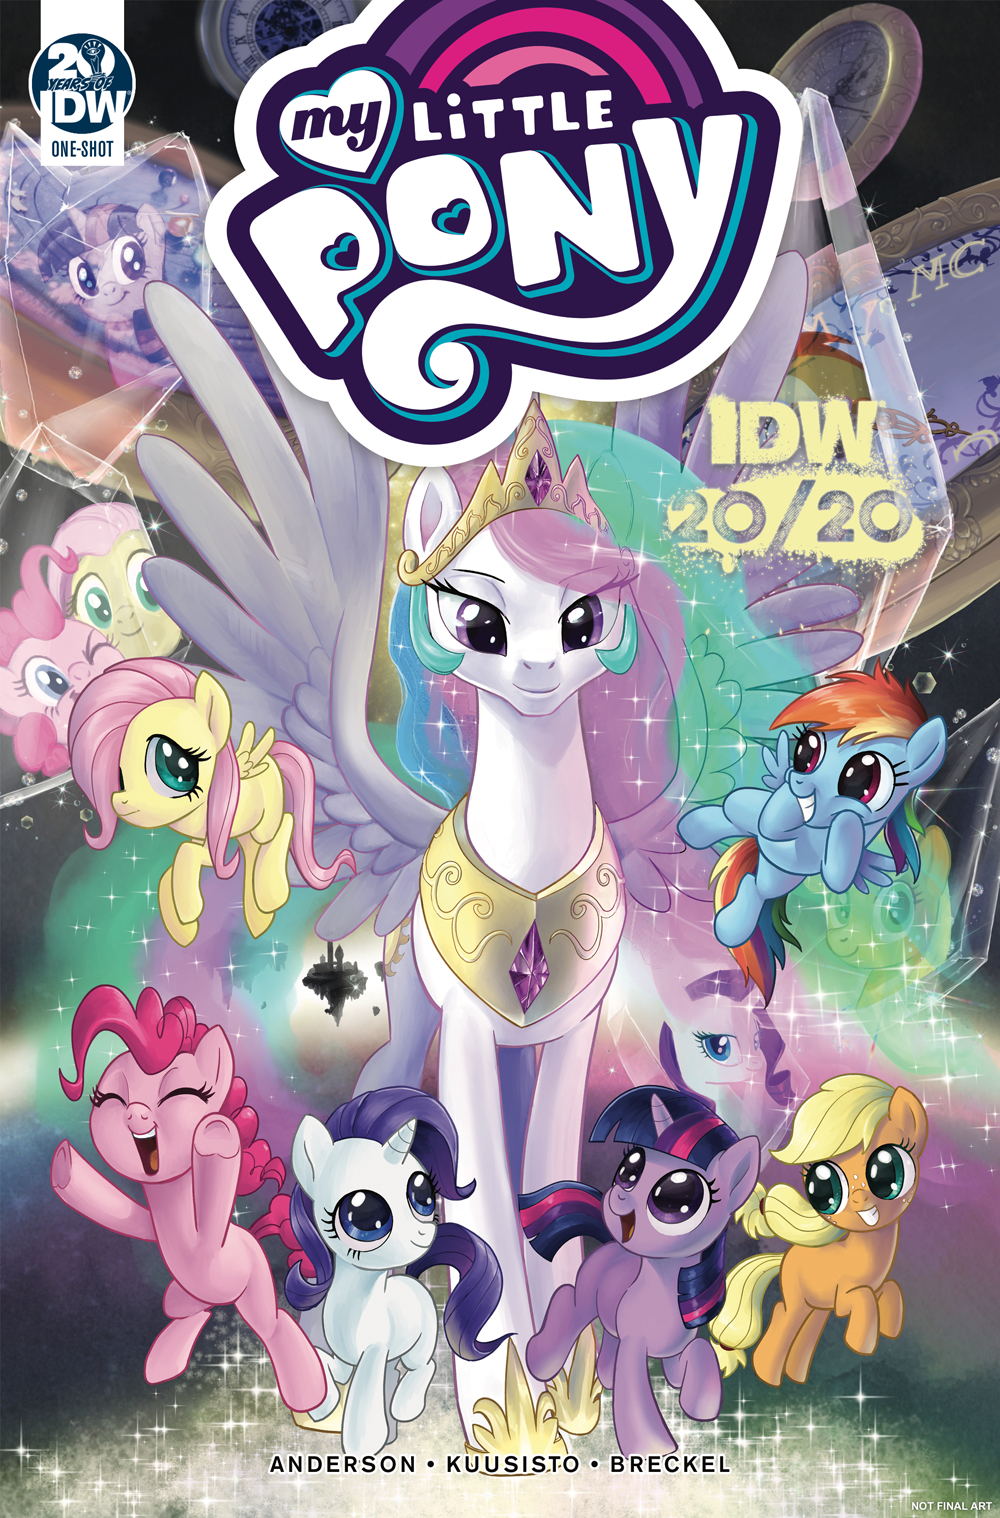 MY LITTLE PONY IDW 2020 KUUSISTO